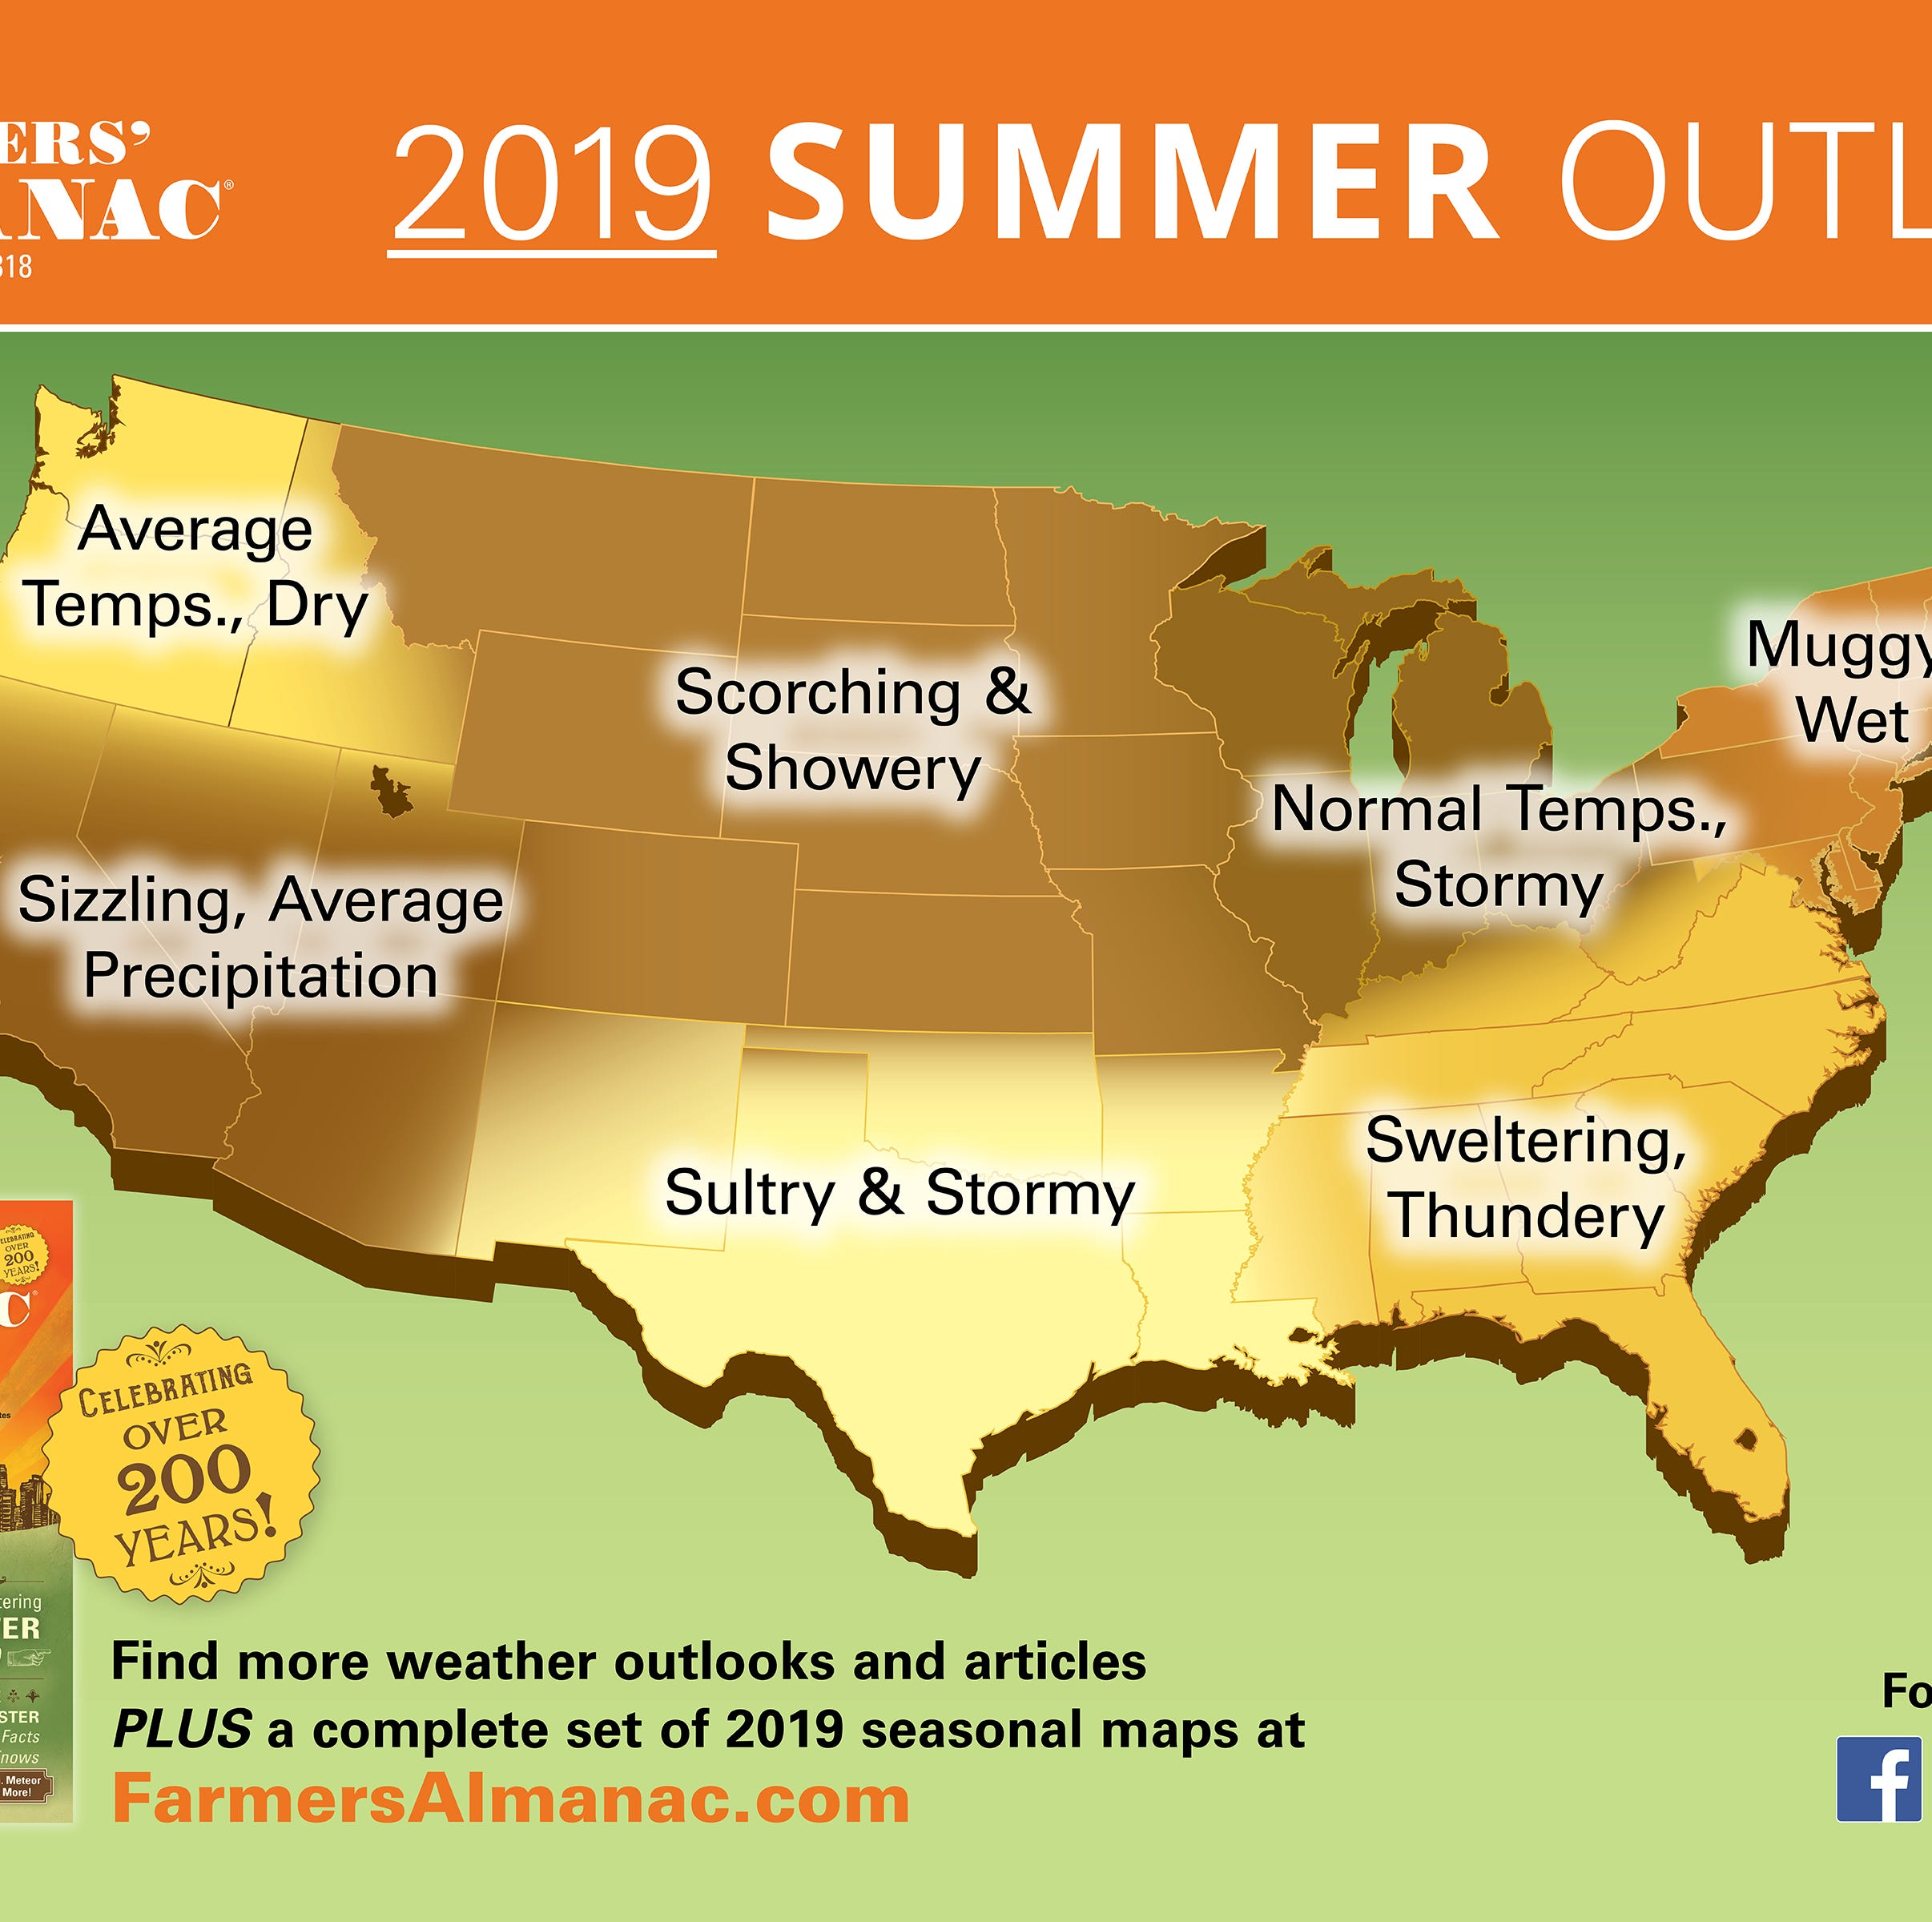 Farmers' Almanac: Summer's going to be a muggy, wet one for Pa.